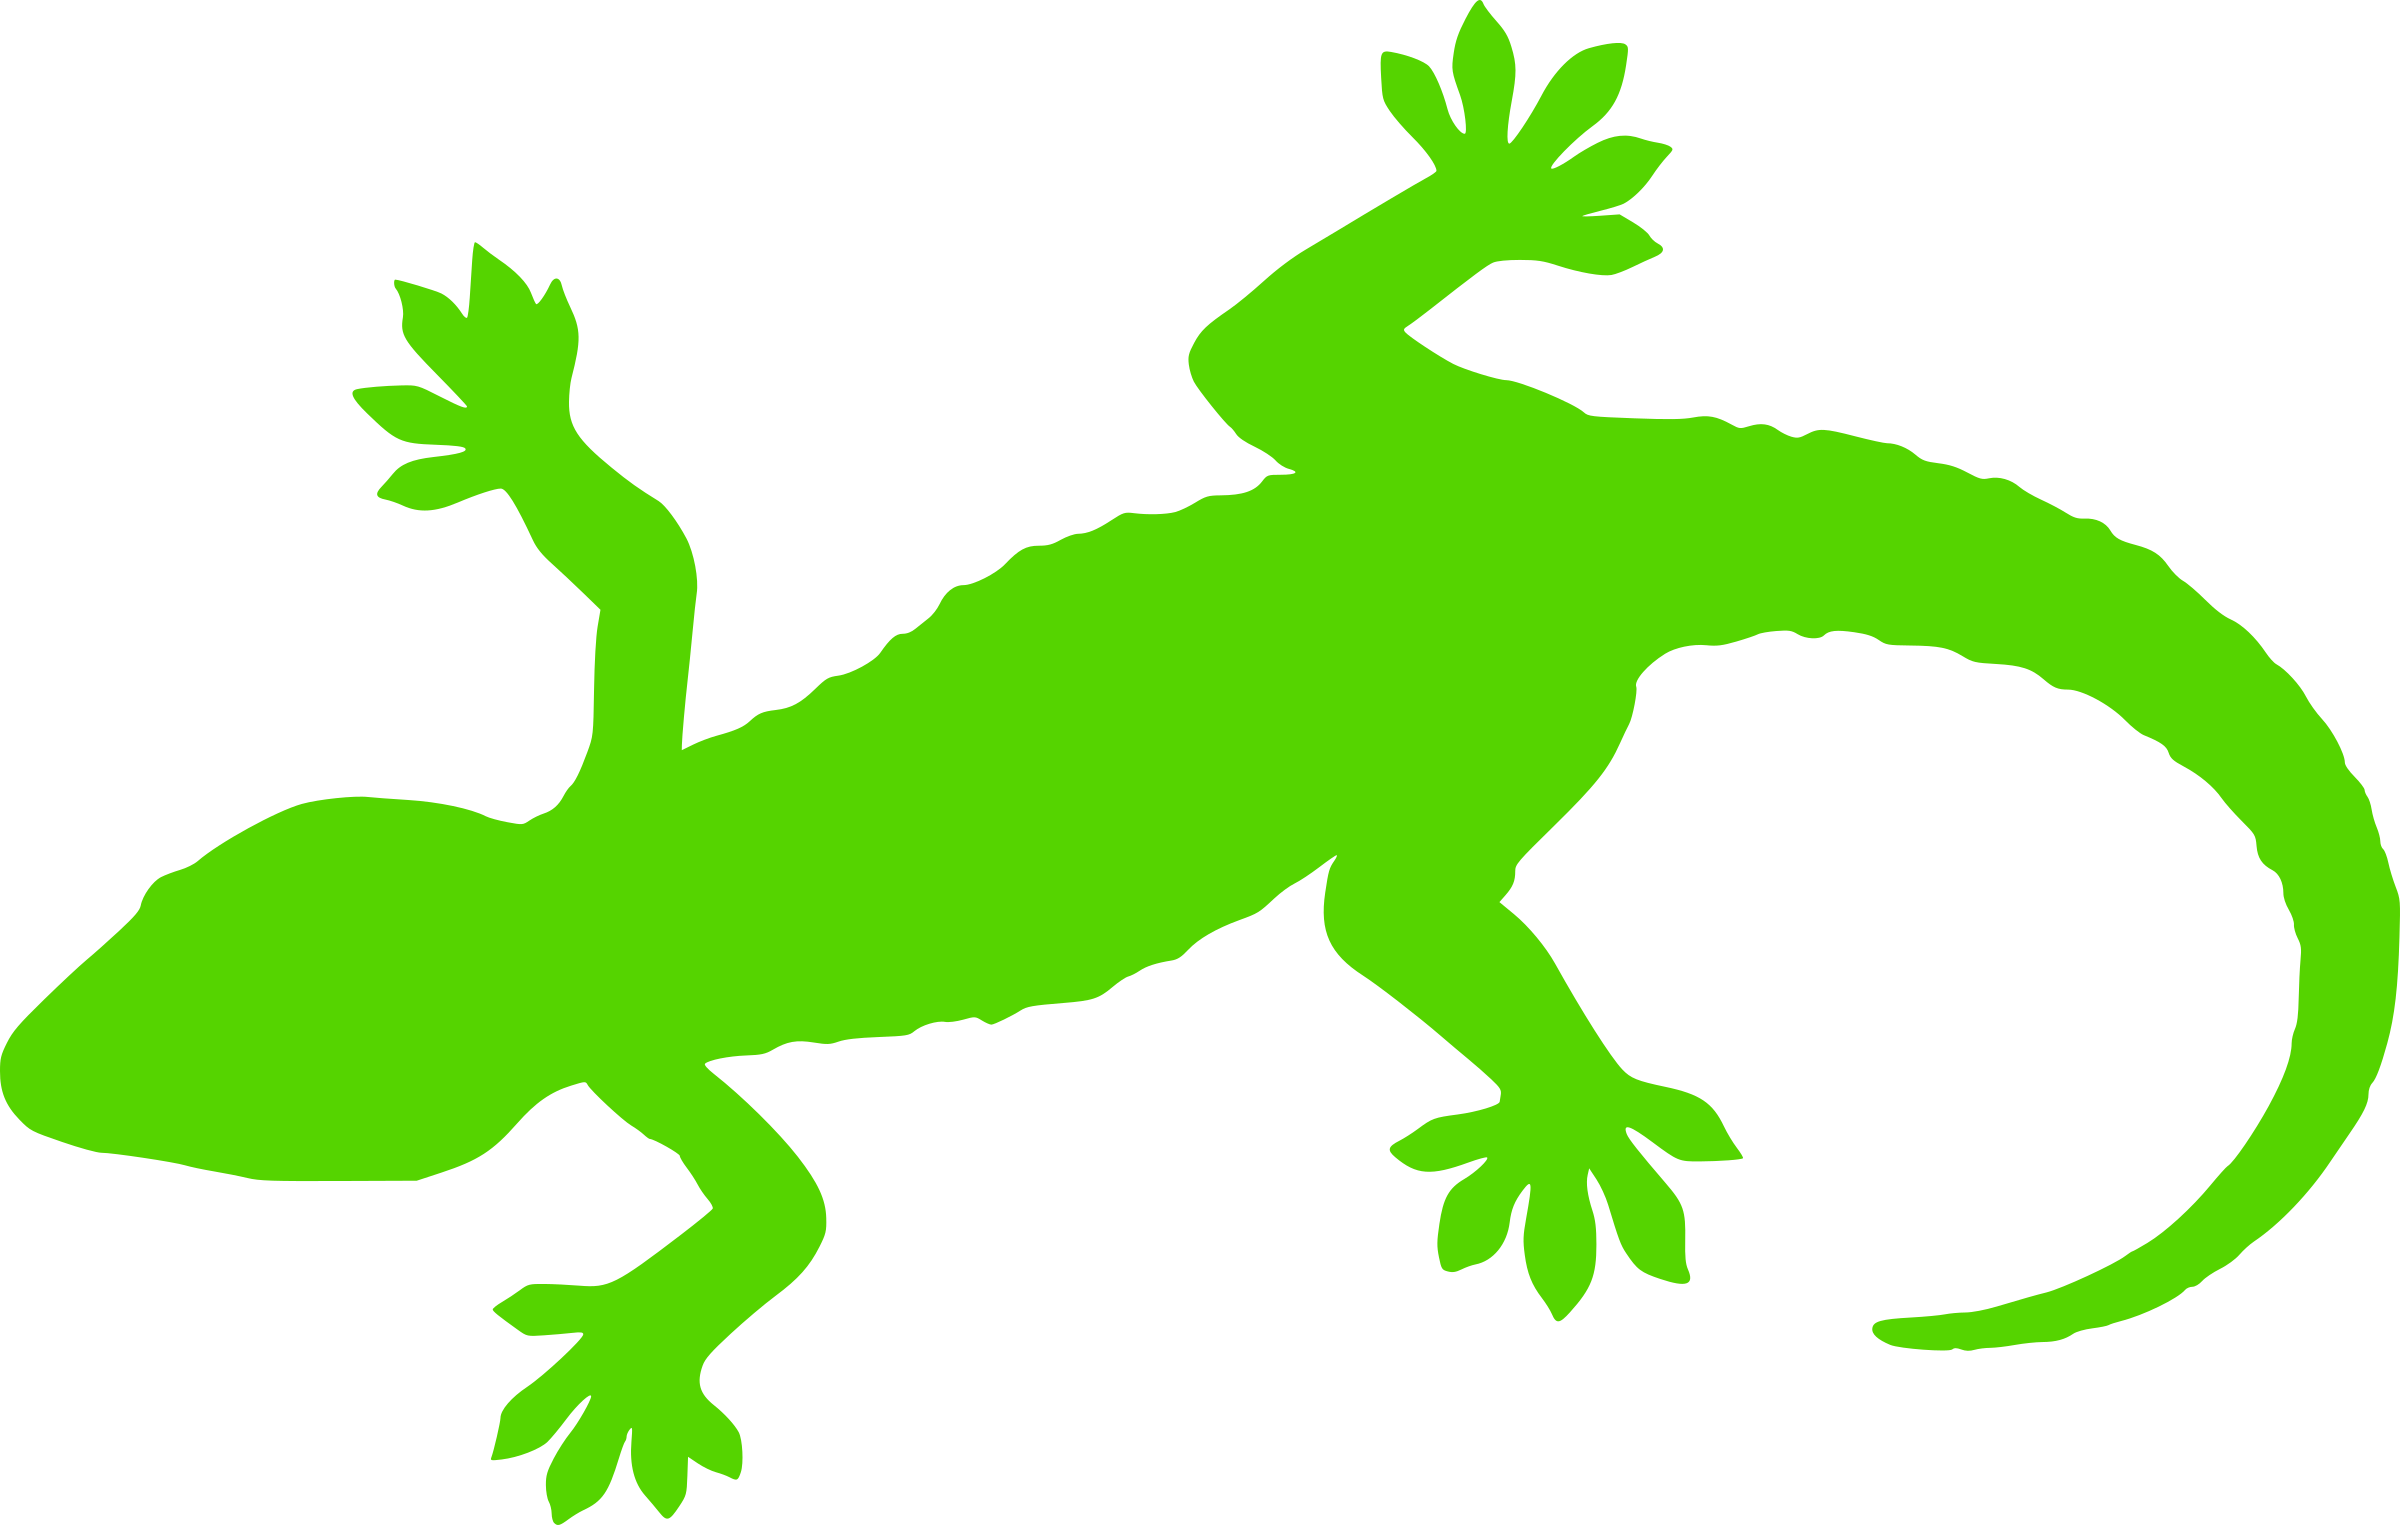 Lizard svg silhouette. Green gecko icons png